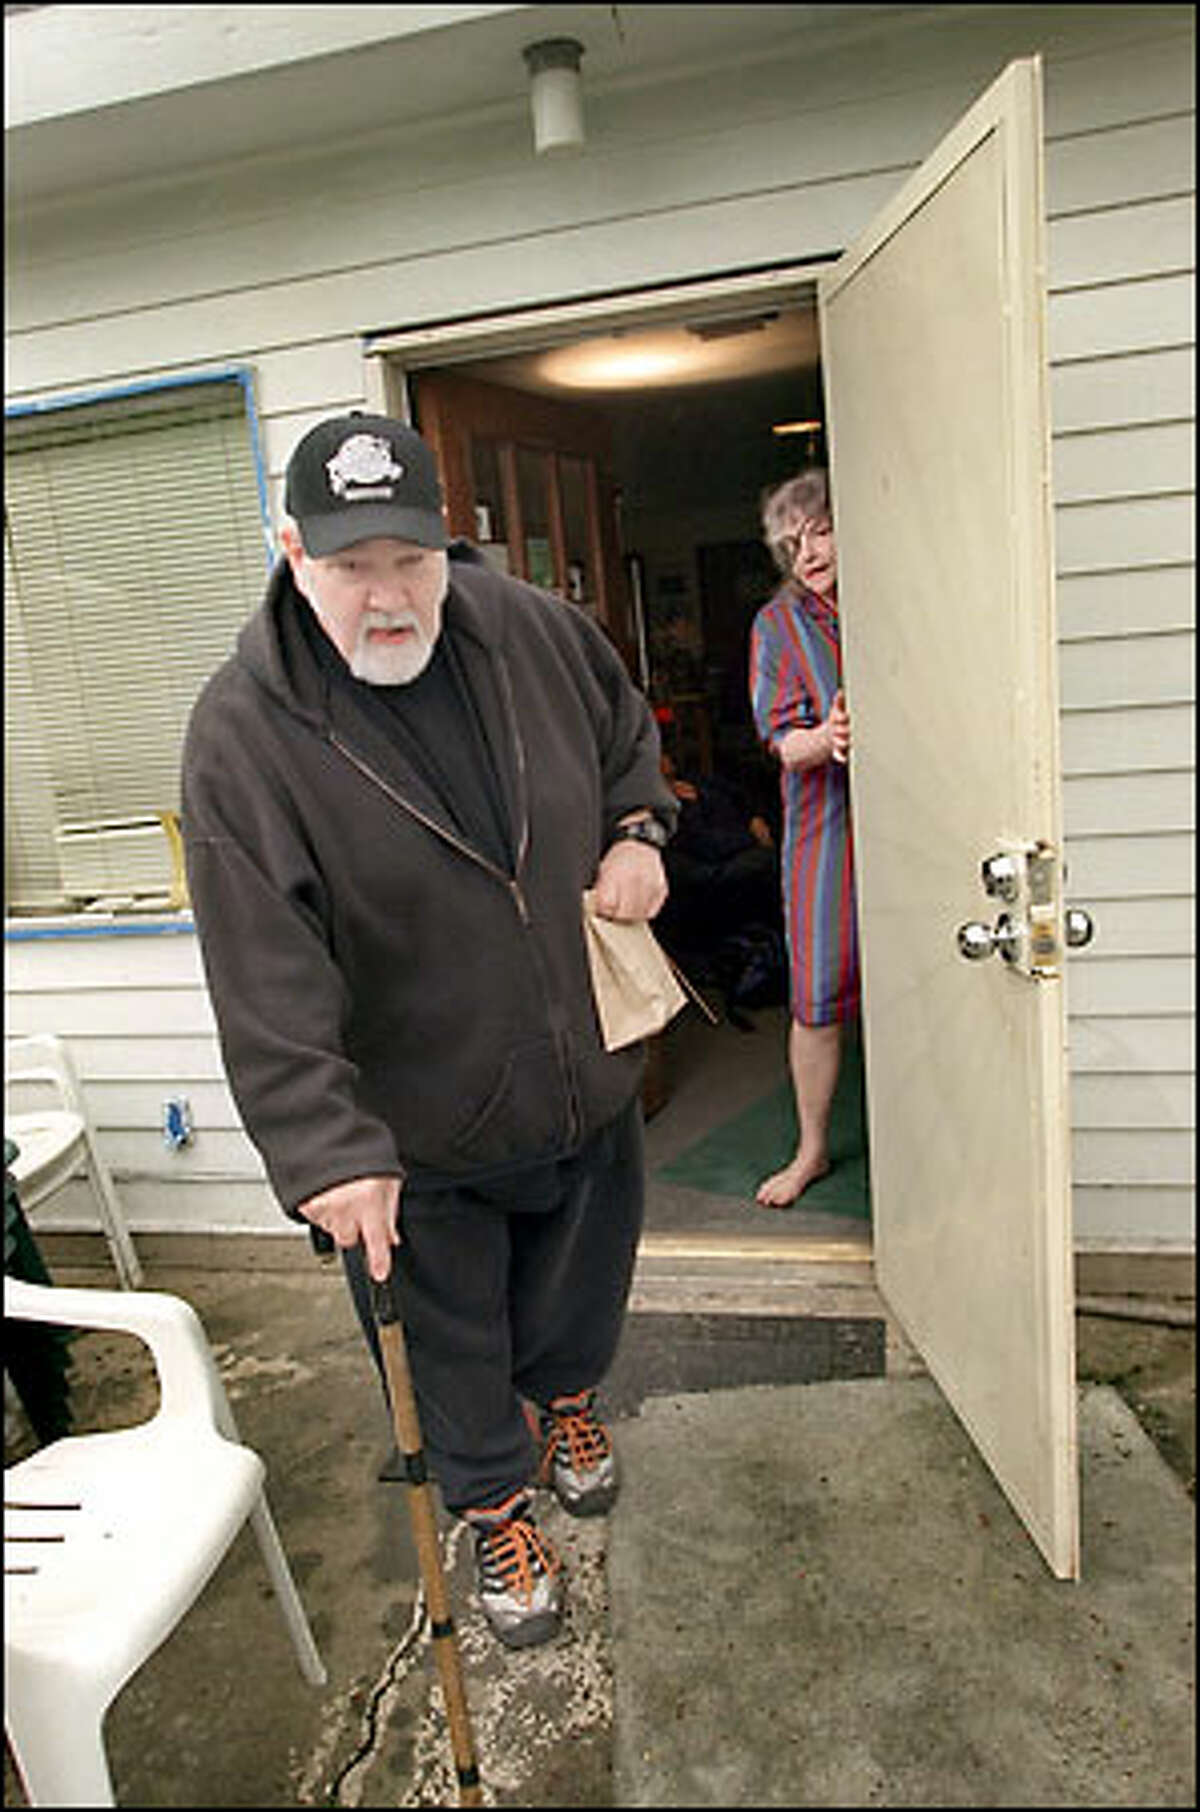 Brad Waugh, who has multiple sclerosis and diabetes and belongs to the Green Cross Cooperative, leaves with a bag of marijuana. JoAnna McKee holds the door.